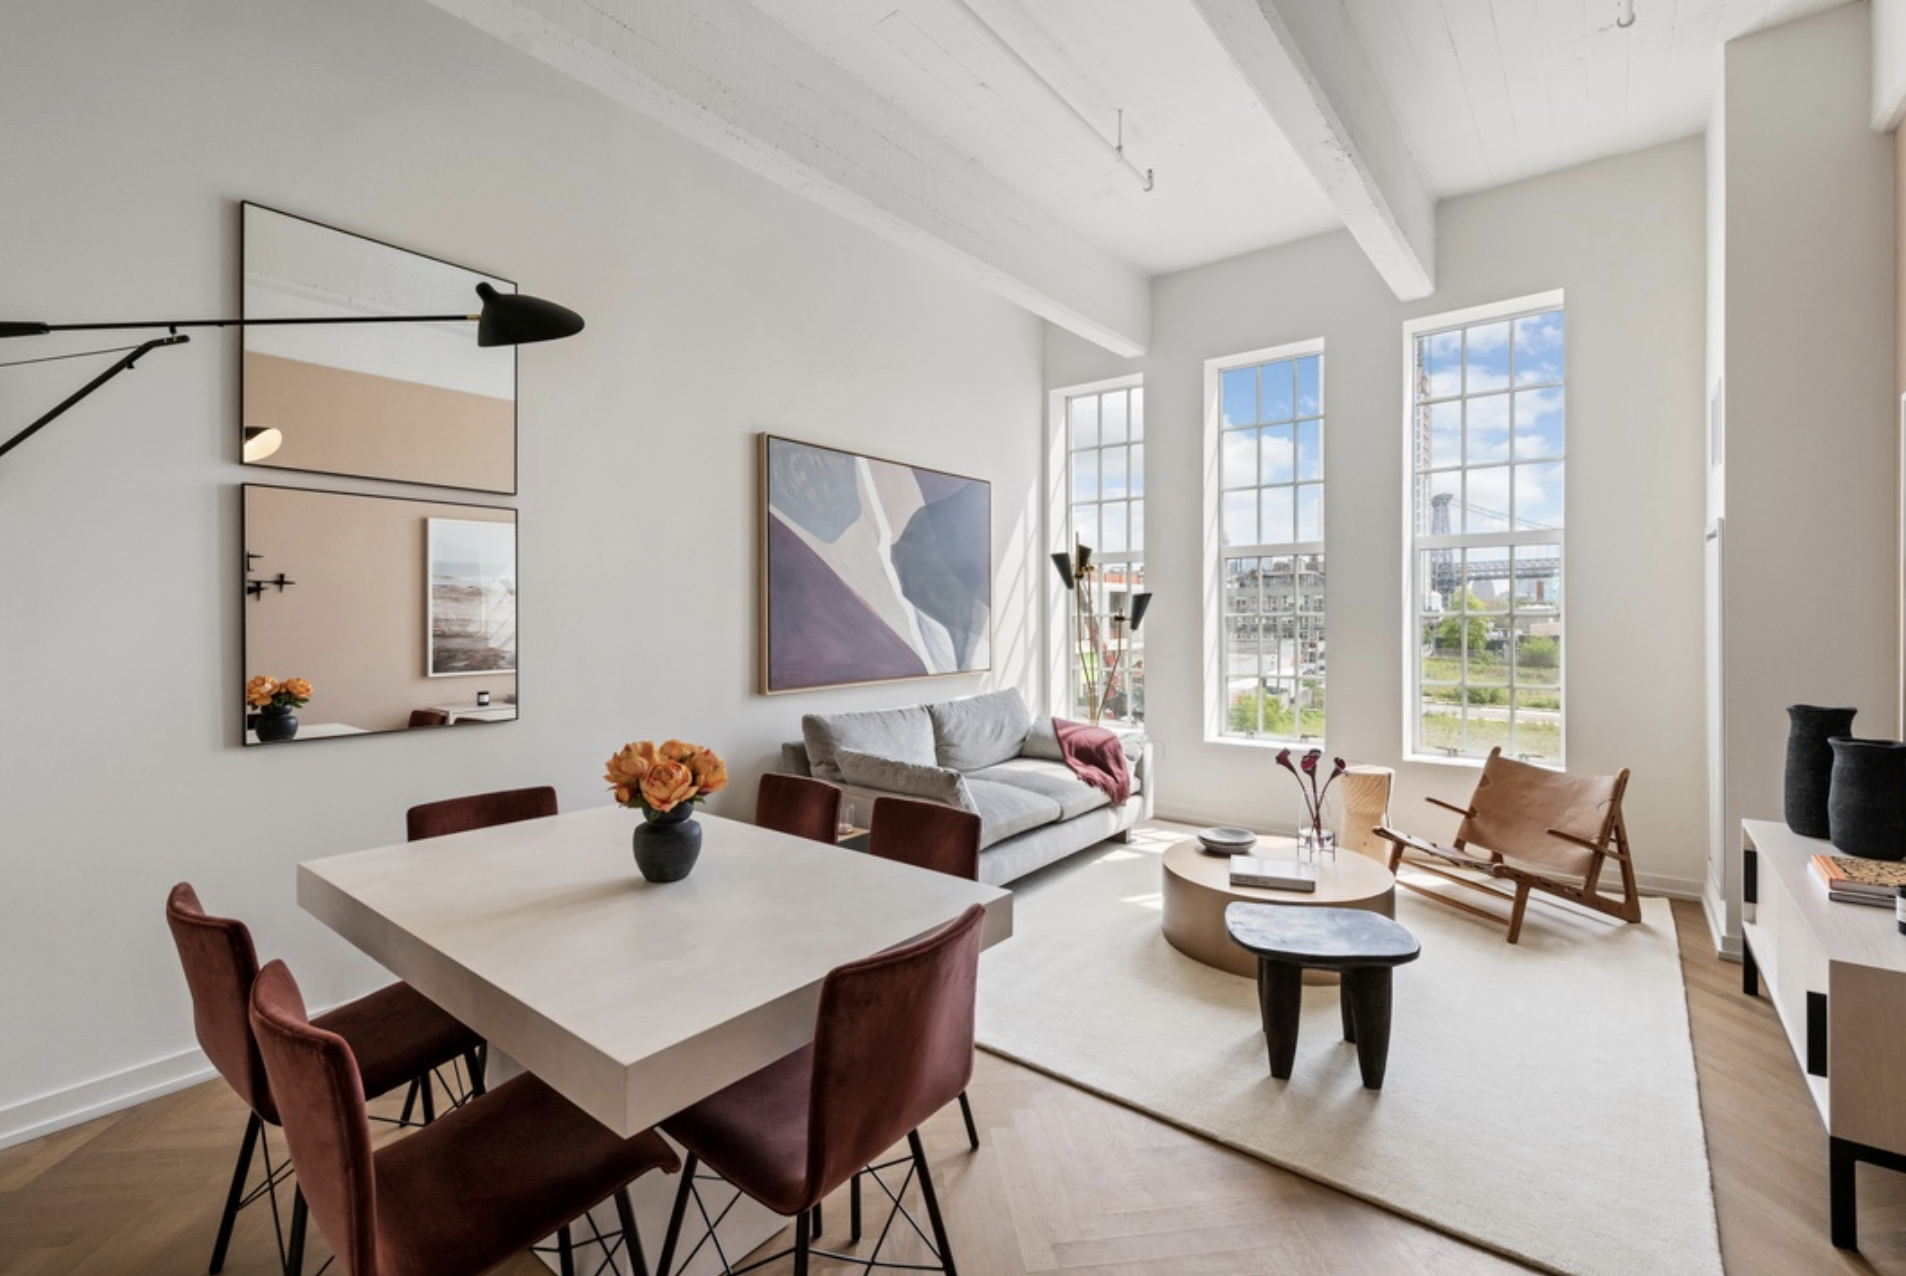 184 KENT AVENUE, D615 - $1,675,000 // 2 Beds // 2 Baths // 942 SQFTThis tremendous split-two bedroom home offers stunning Southern views. Featuring soaring beamed ceilings, this phenomenal space epitomizes the ideal in authentic Williamsburg loft living. The master bathroom features Pietre DItalia Nero mosaic floor tile and honed Gioia Carrara stone walls. The sprawling living area features Herringbone tobacco smoked oak wood flooring and includes a stacked Asko washer and dryer.